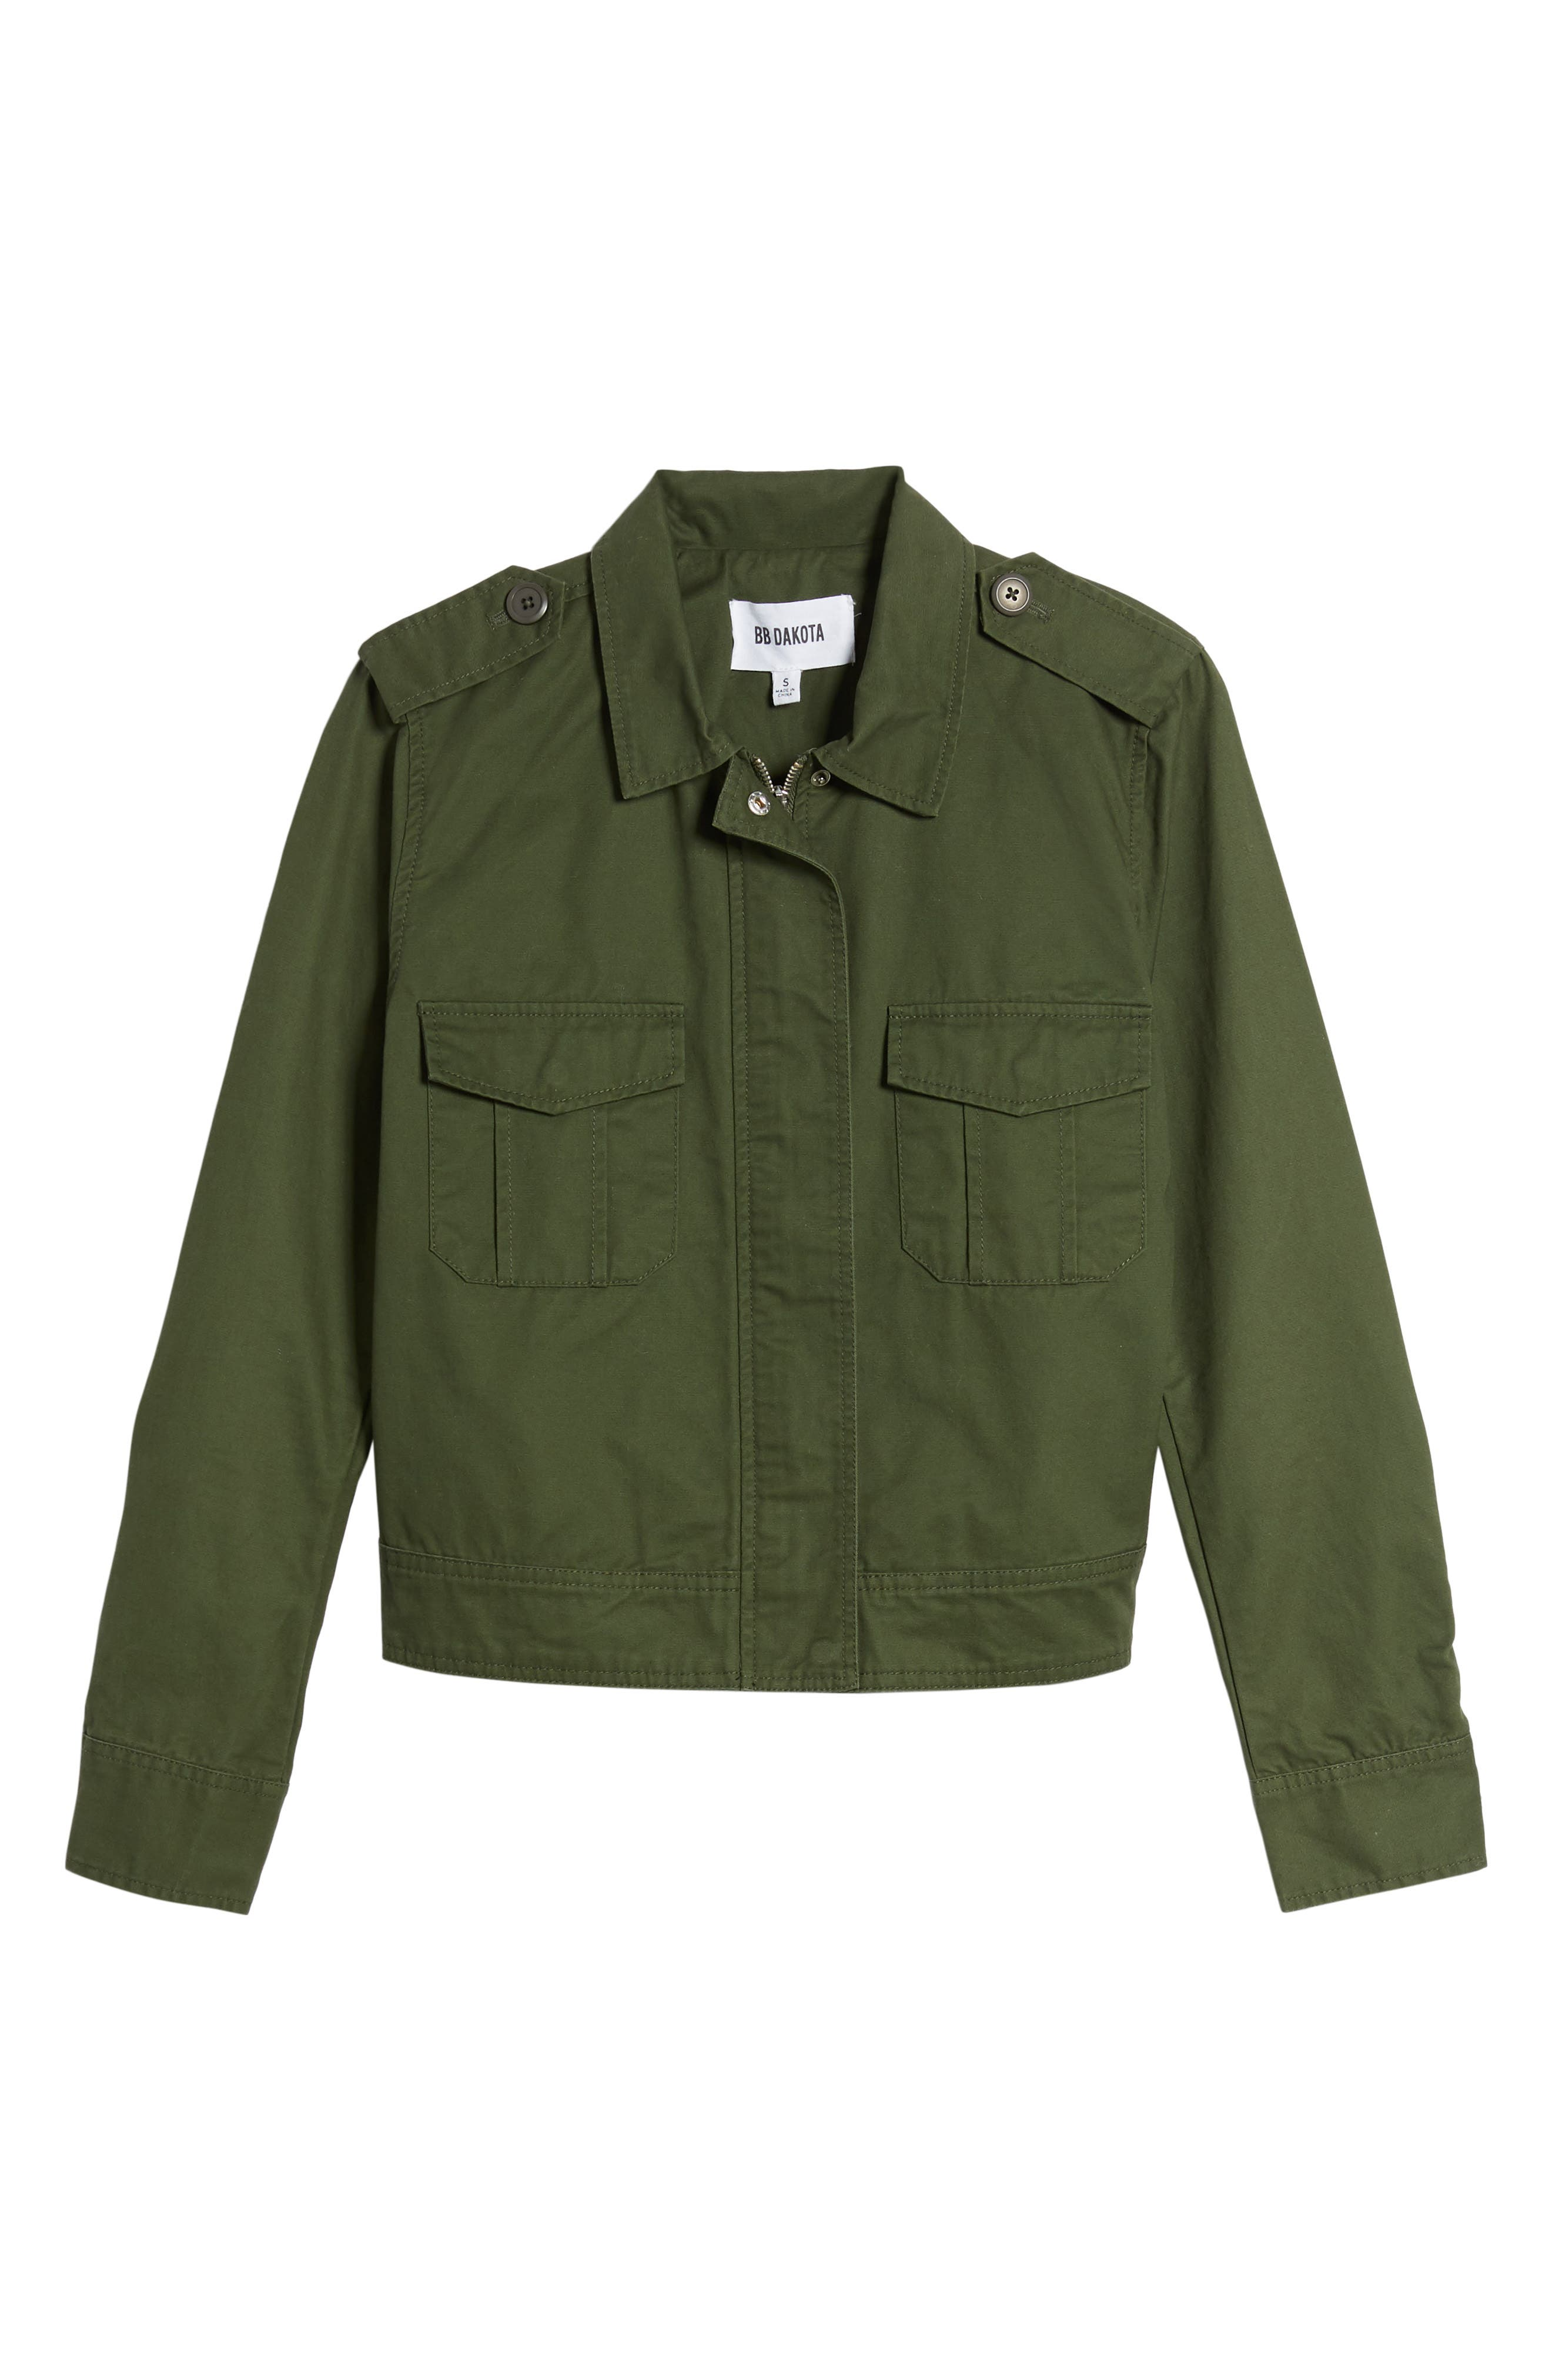 Maddox Cotton Twill Army Jacket,                             Alternate thumbnail 6, color,                             301